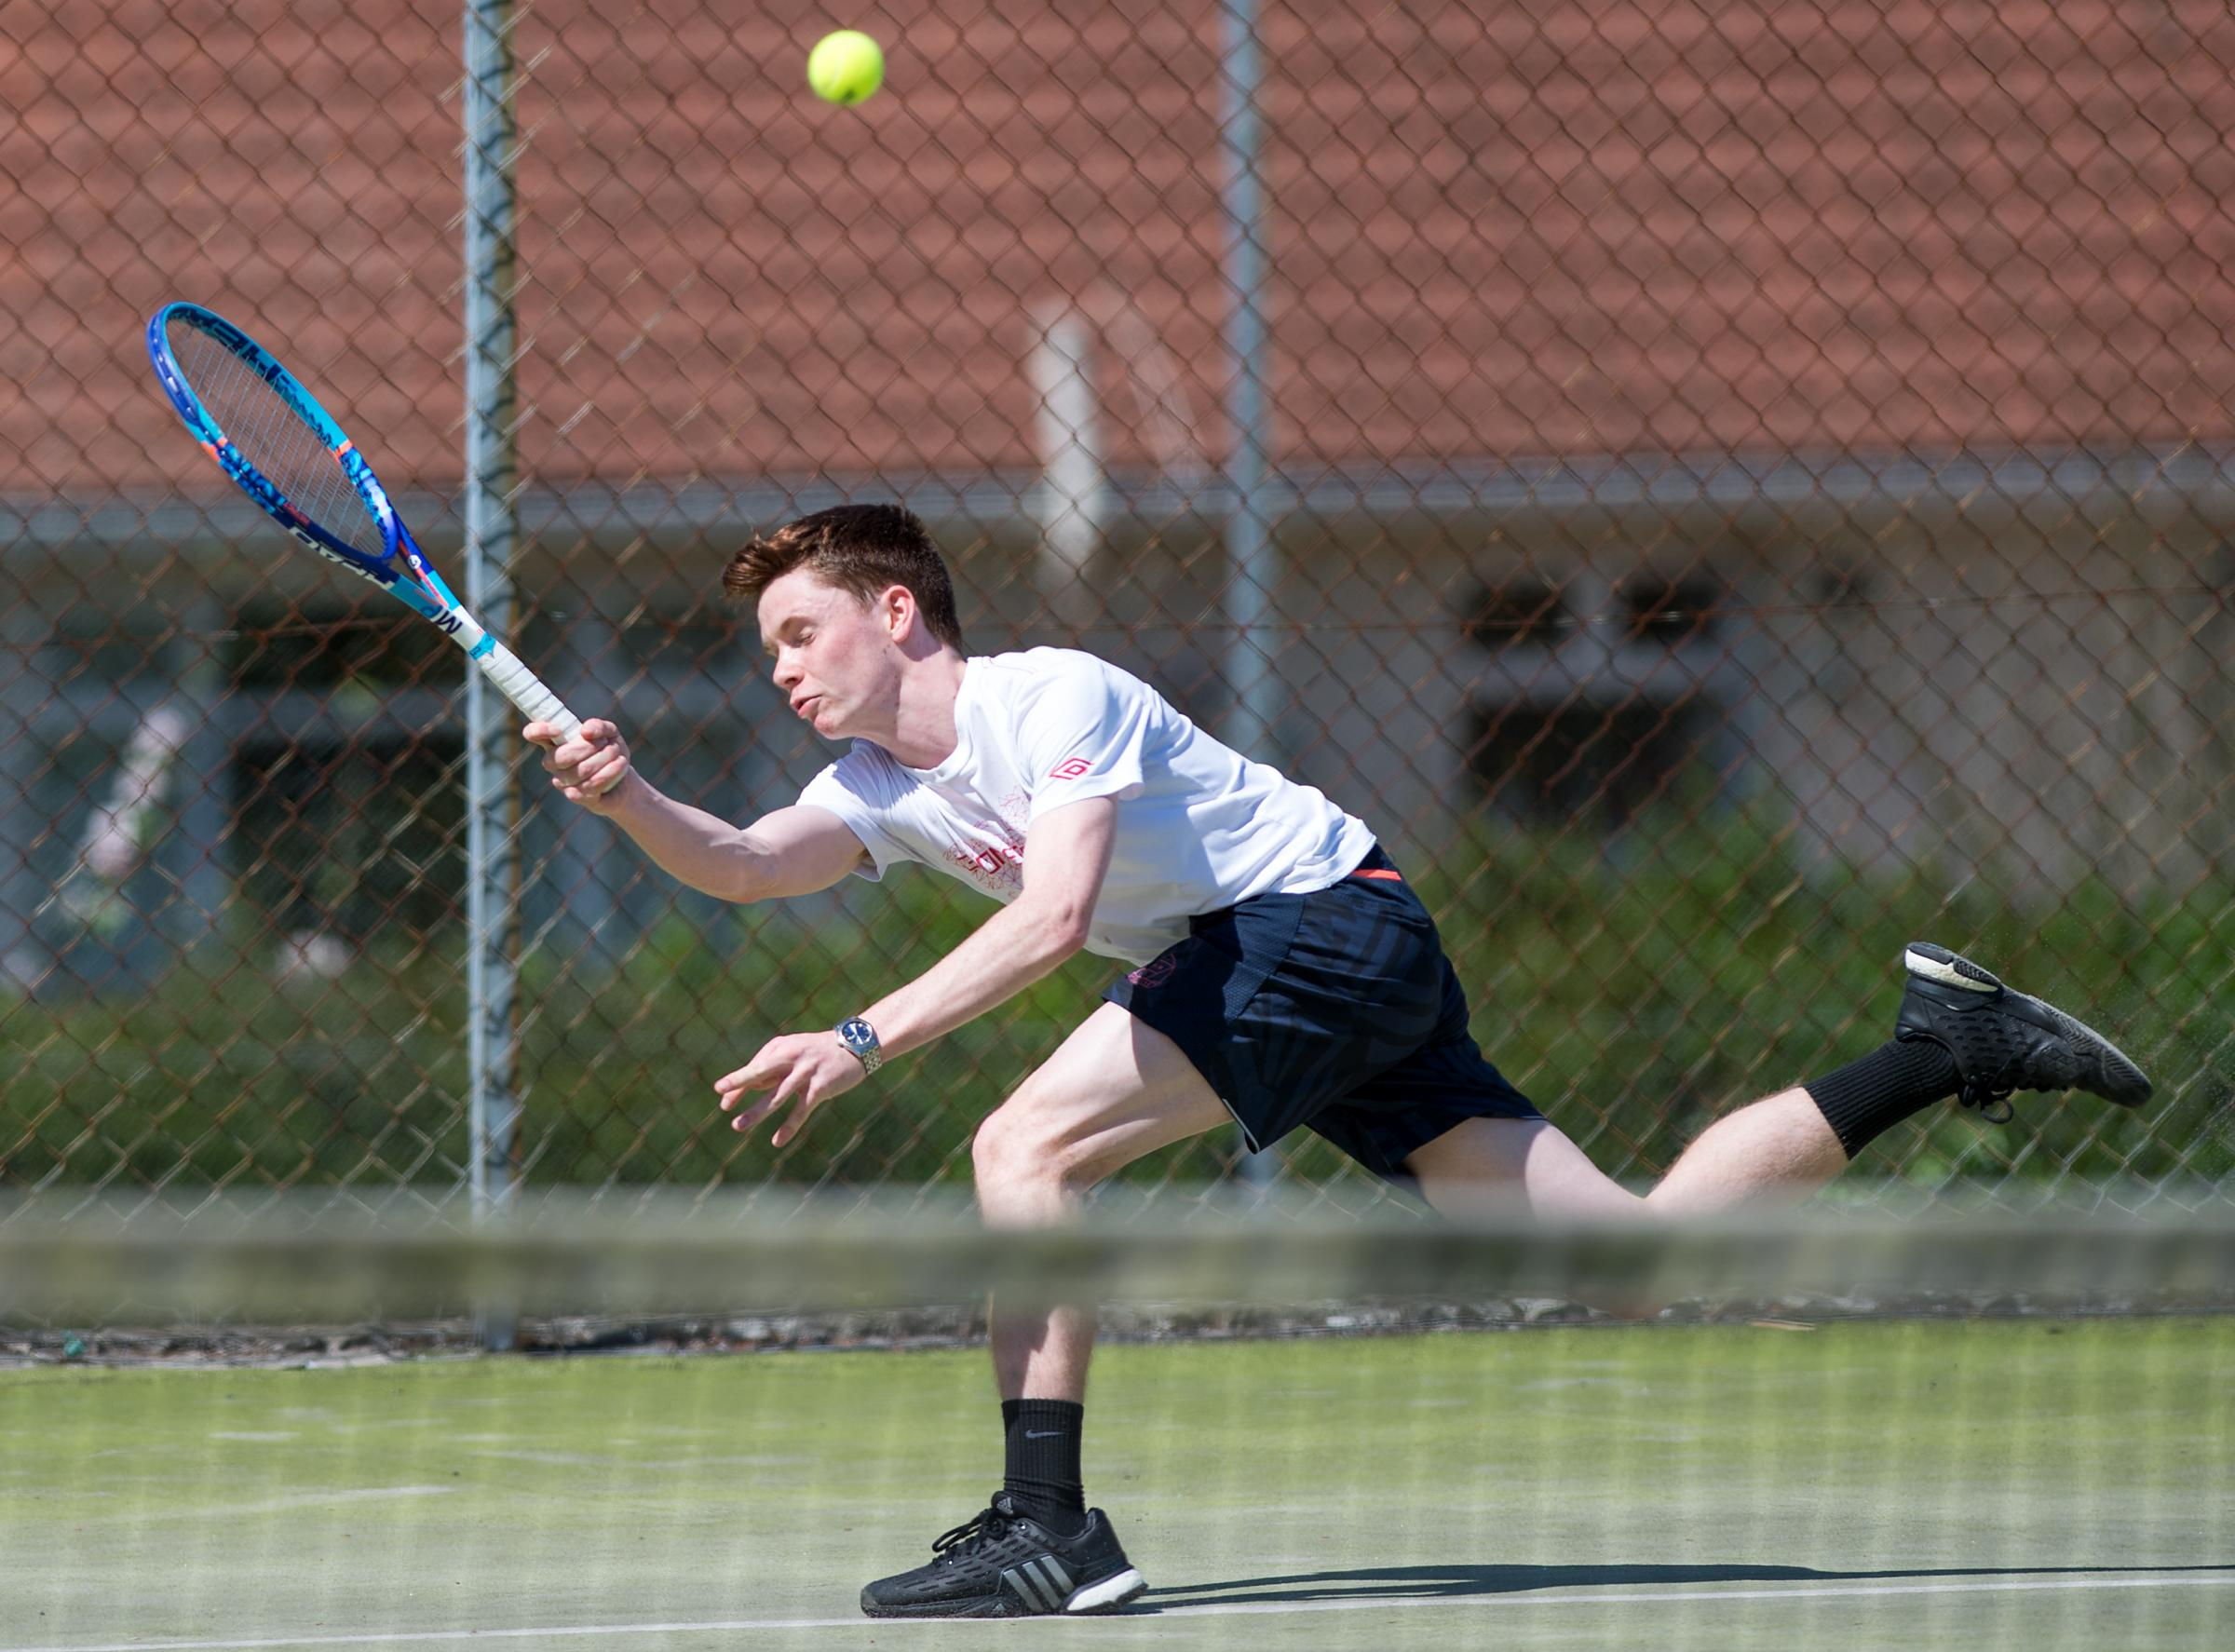 Ronan McKeever stretching for a shot during a rally in his Men's Singles final.*.